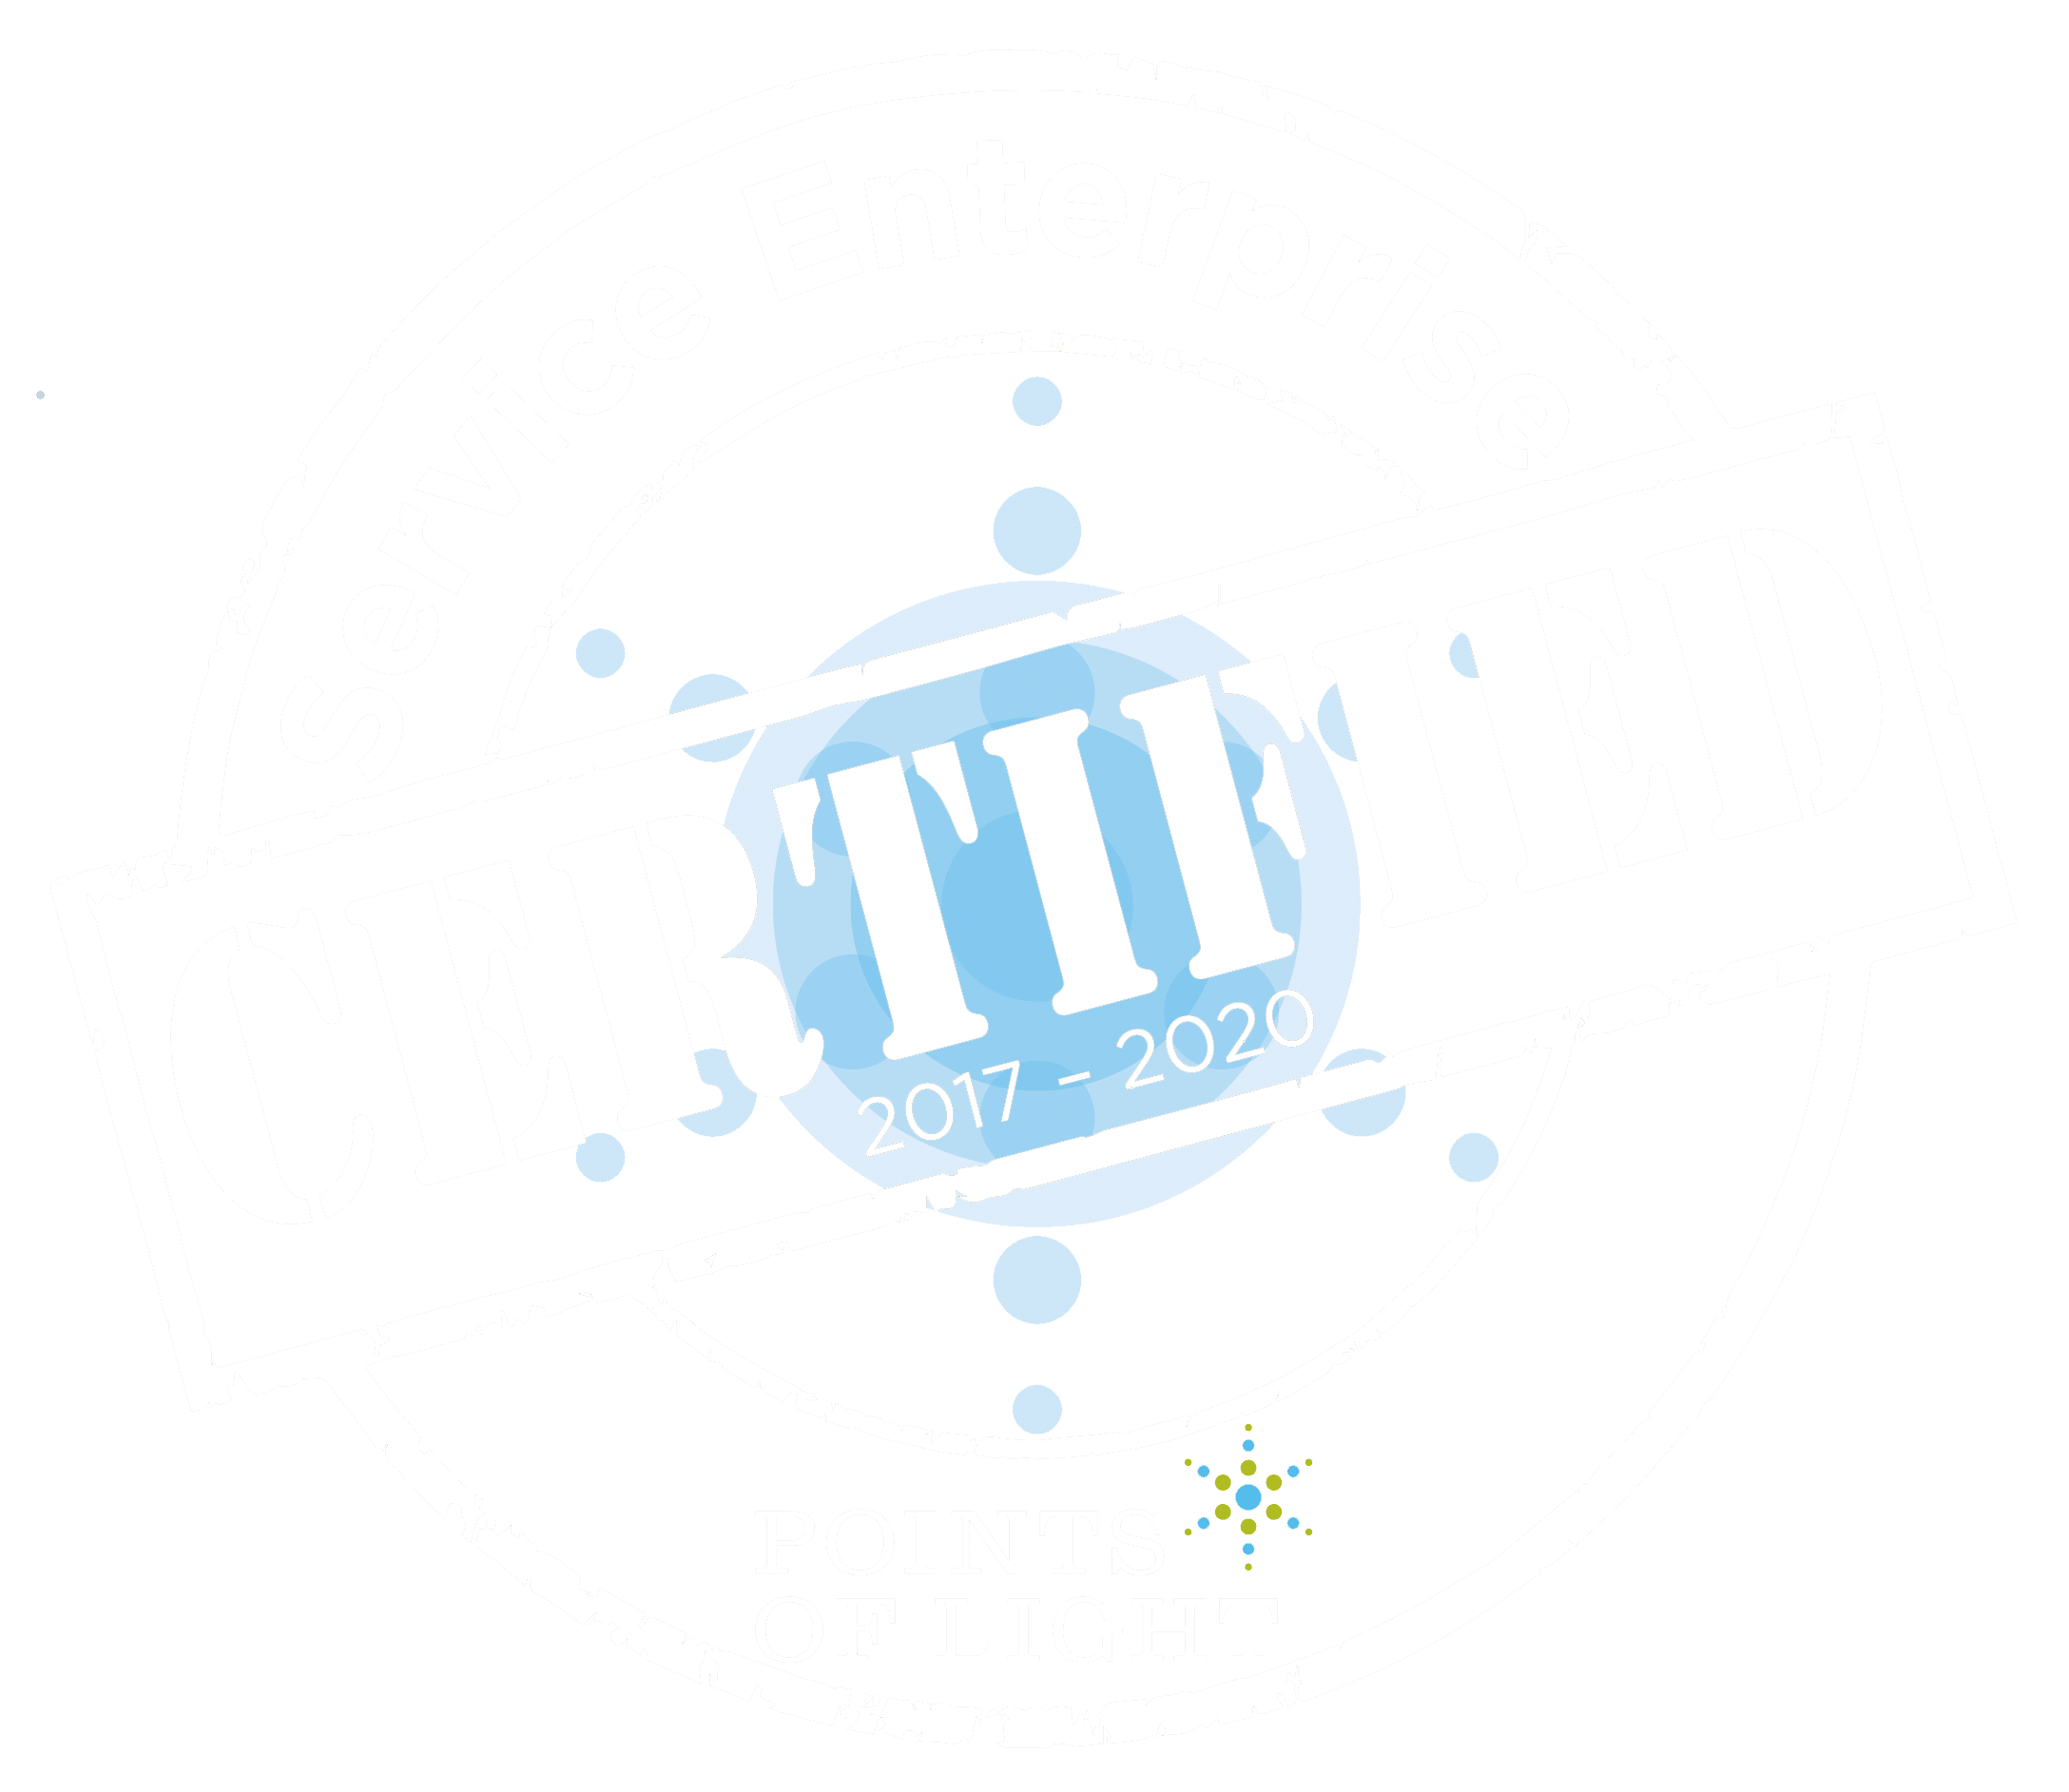 Service Enterprise Certified Seal